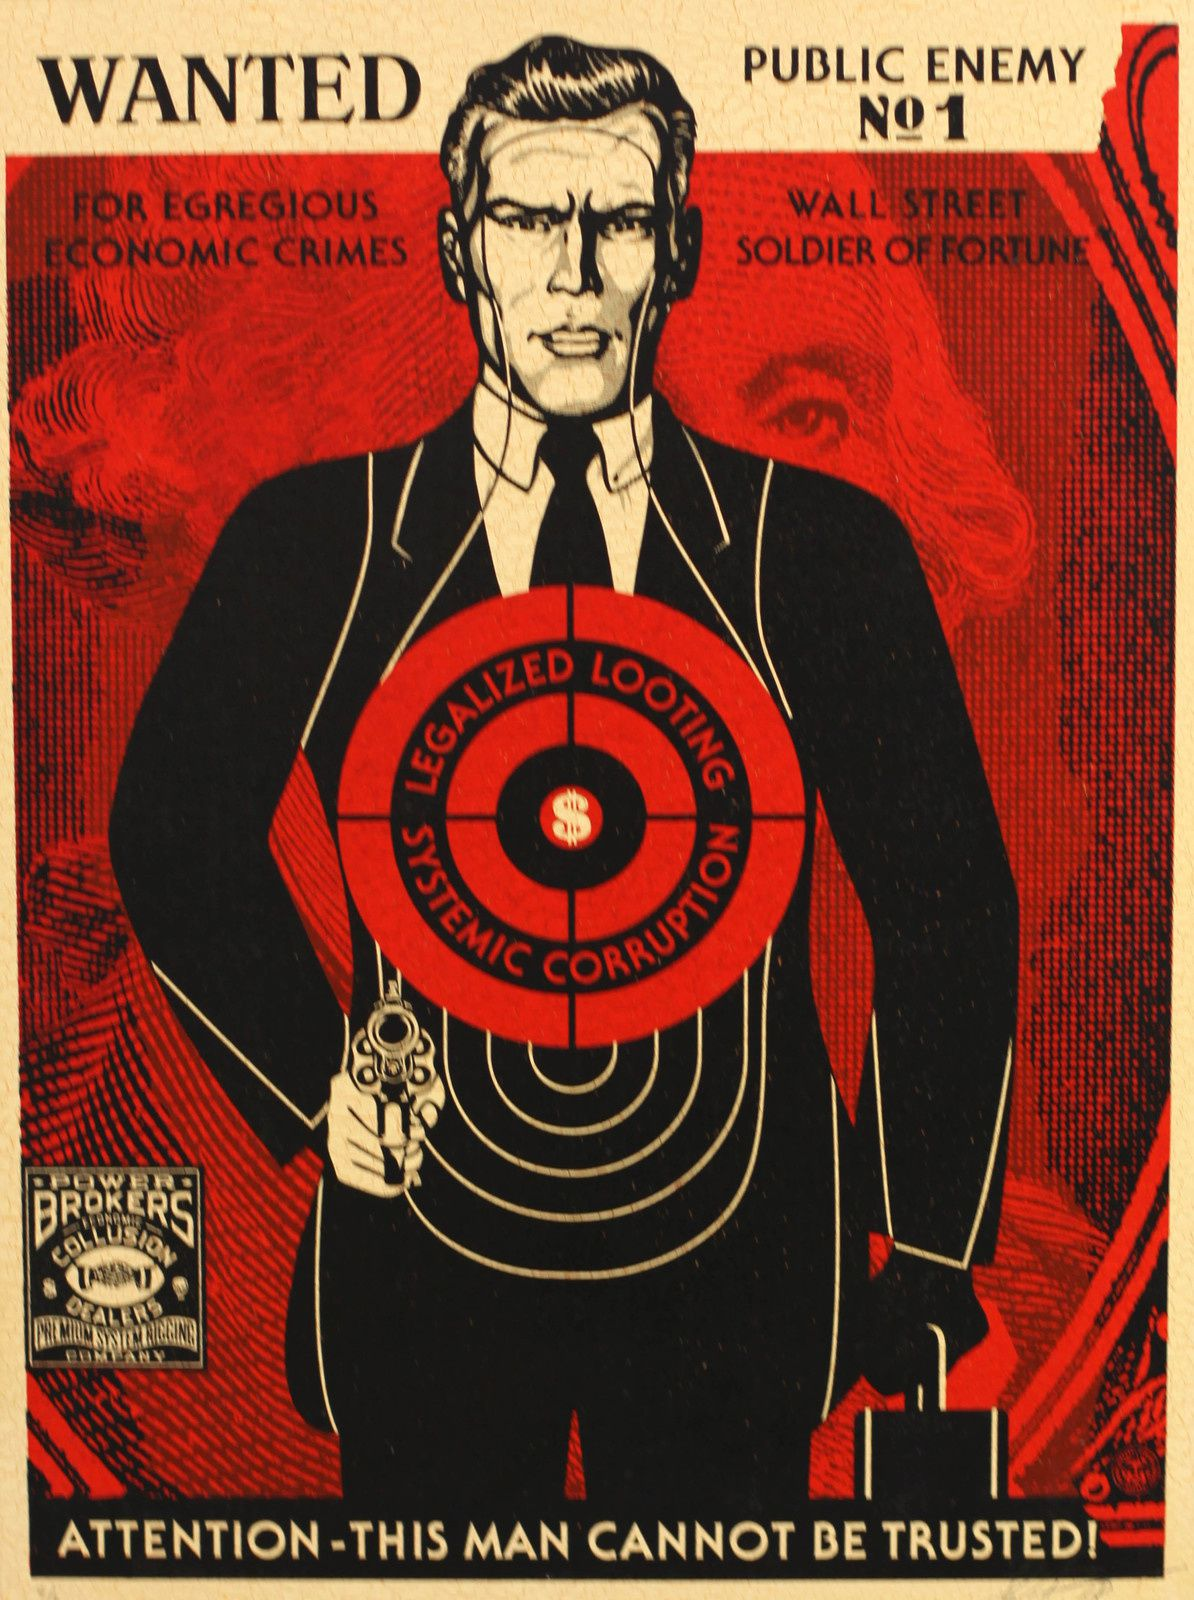 """Wall Street Public Enemy"", 2018 de Shepard FAIREY - Courtesy Galerie Itinerrance © Photo Éric Simon"